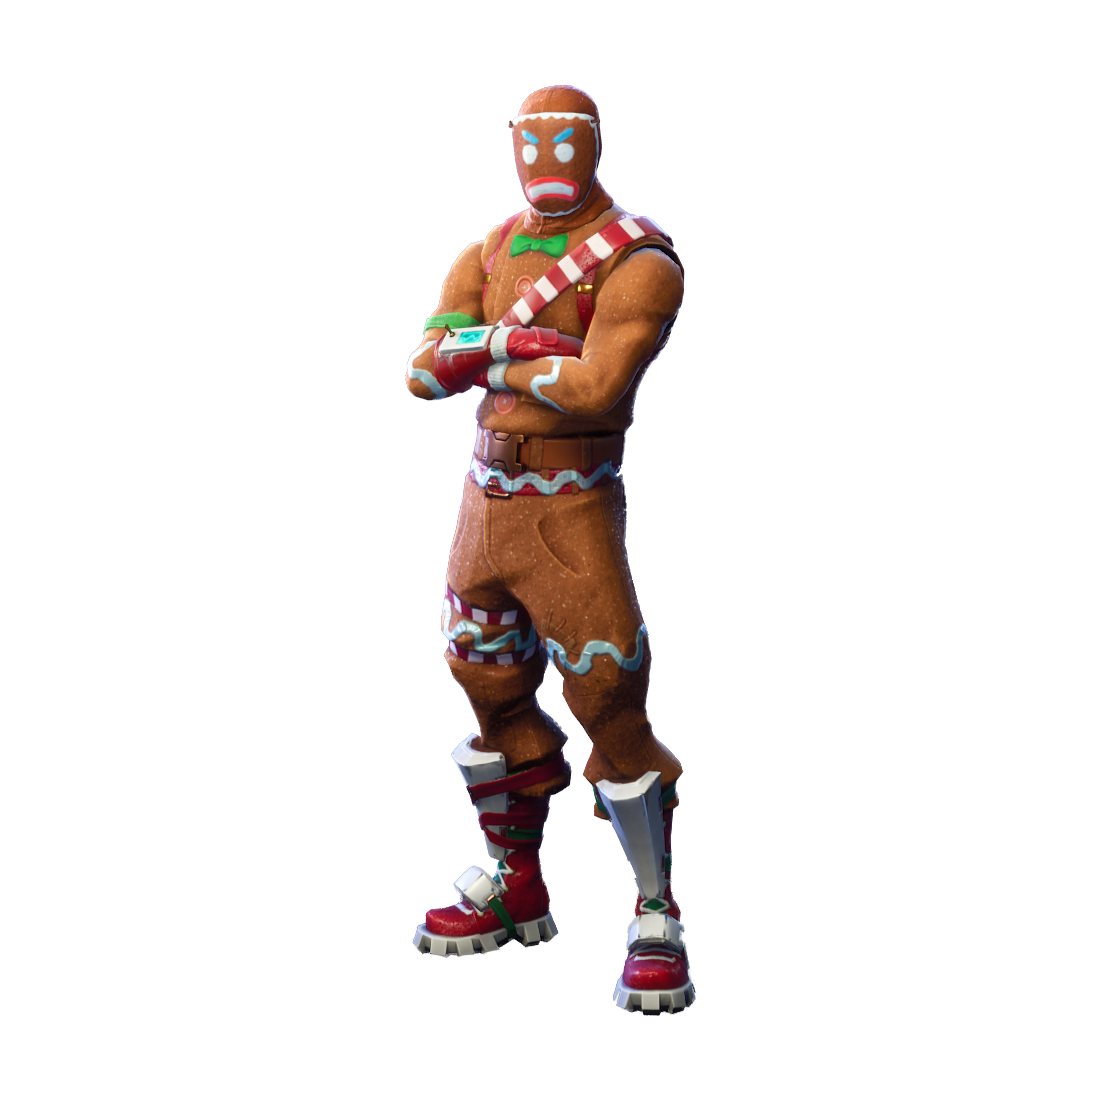 Fortnite Merry Marauder PNG Image.